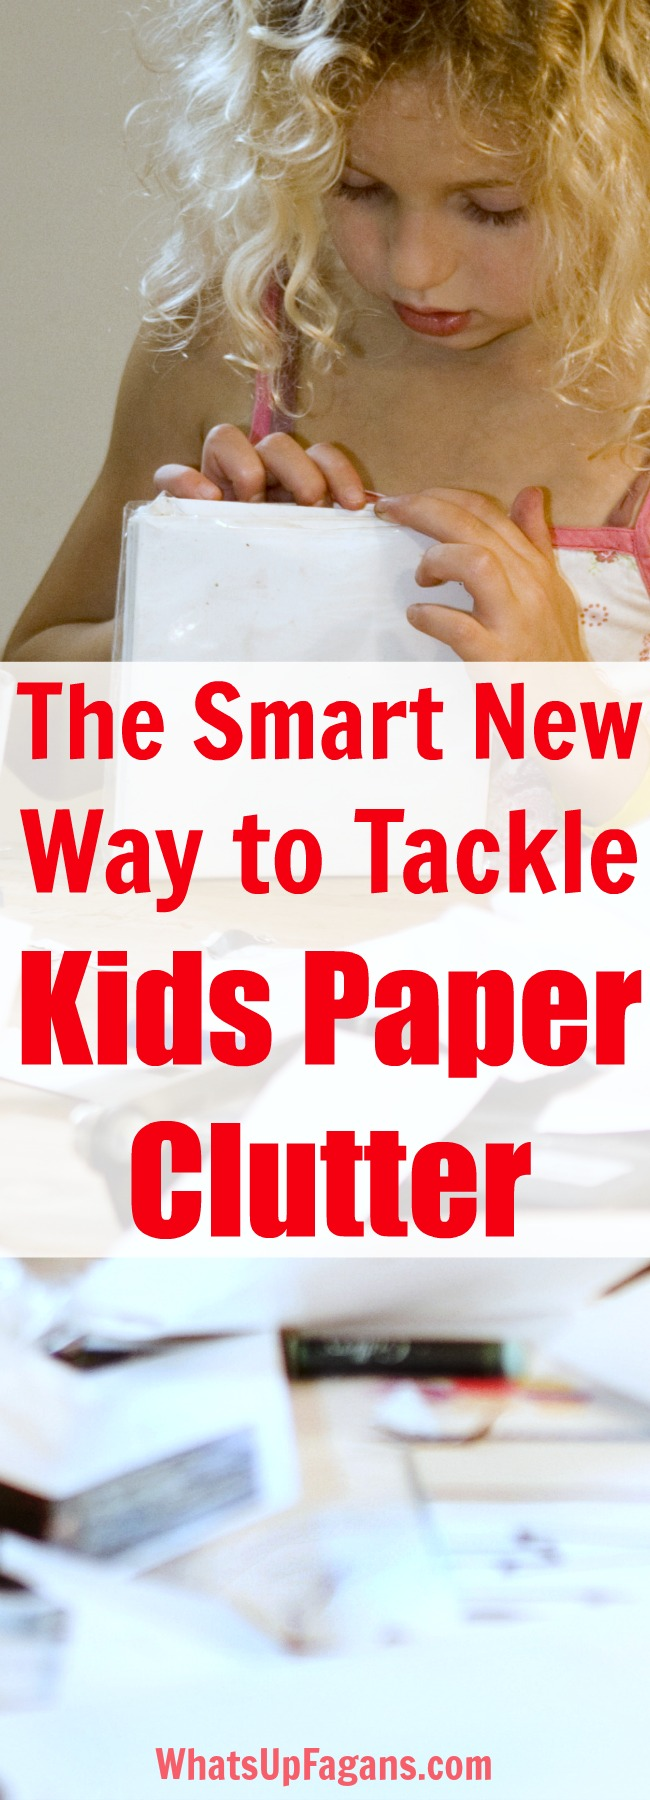 Reduce Kids Paper Clutter in Your Home Organization and Declutter Sessions | Keepy App | Review | Save Keep Preserve Memories and Kids Artwork | Video Storage App |